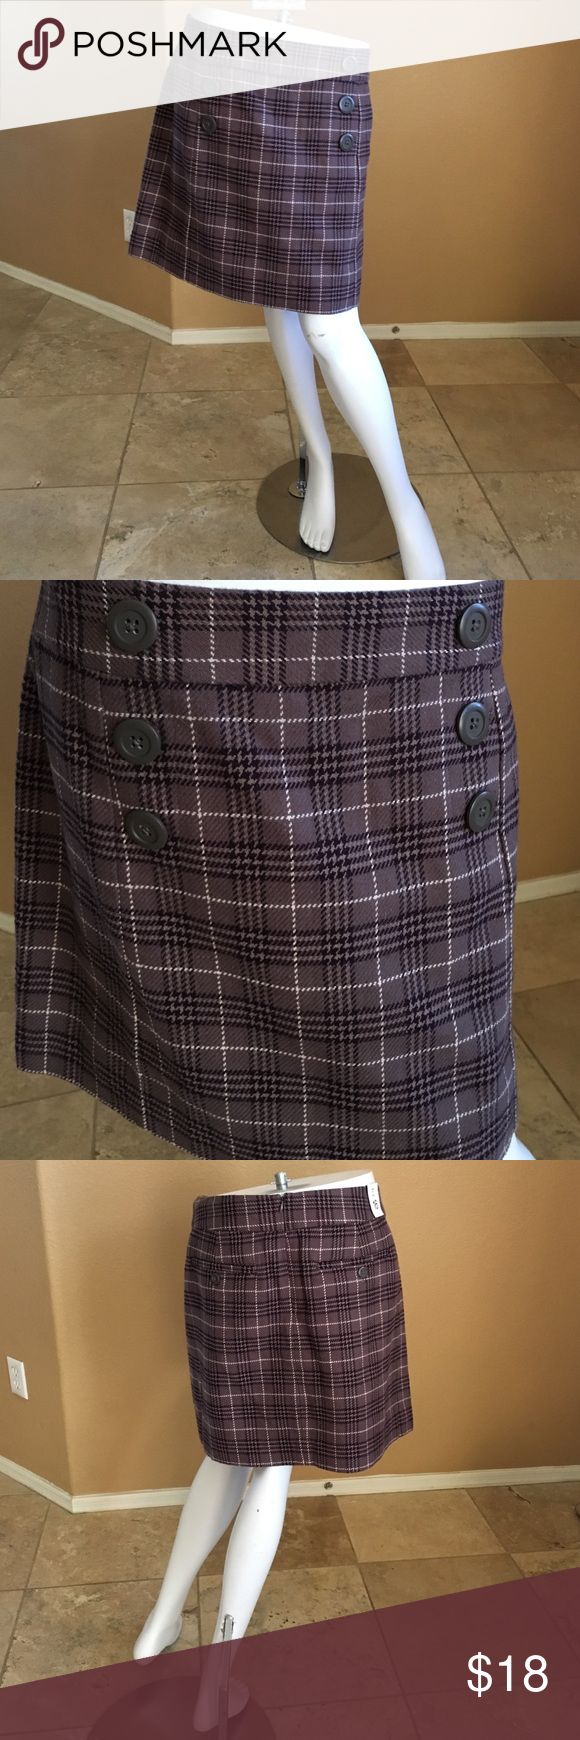 Gap Skirt! Gap Skirt with Plaid Look and Buttons! Size 16, NEVER WORN TAGS STILL ON! GAP Skirts Mini